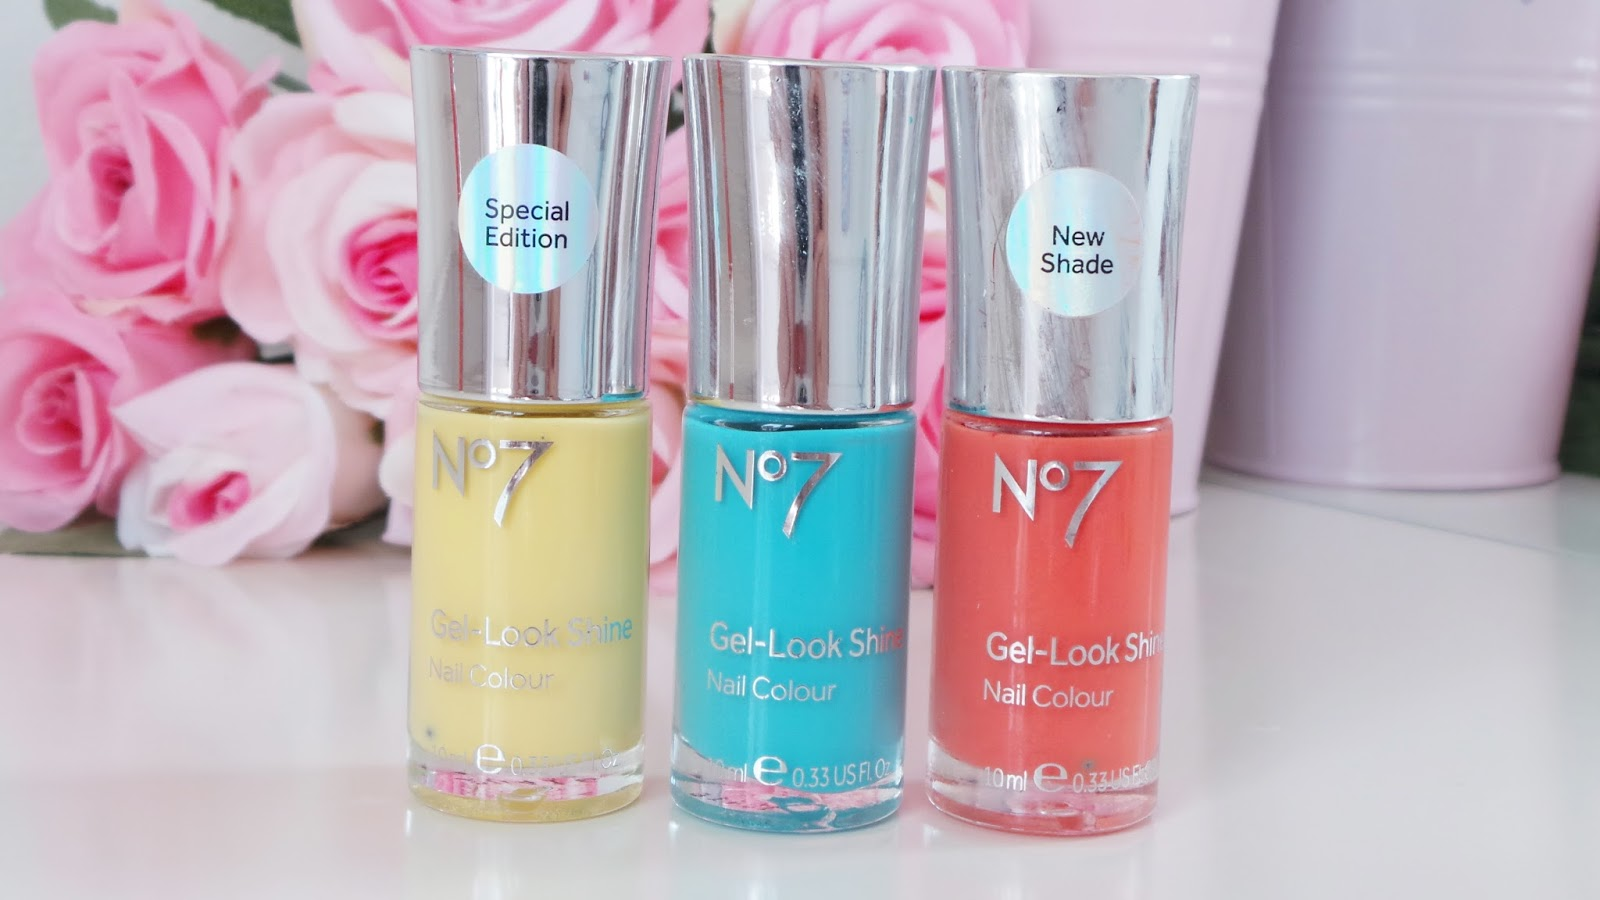 gel look shine nail colours, lemon drop, orange spice, mint treat no7 summer collection, no7 at boots, no7 cosmetics, no7 review, no7 make up, no7 summer, no7 nail polish, beauty blog, beauty blogger, bblogger, ukbeautyblog, ukbeautyblogger,